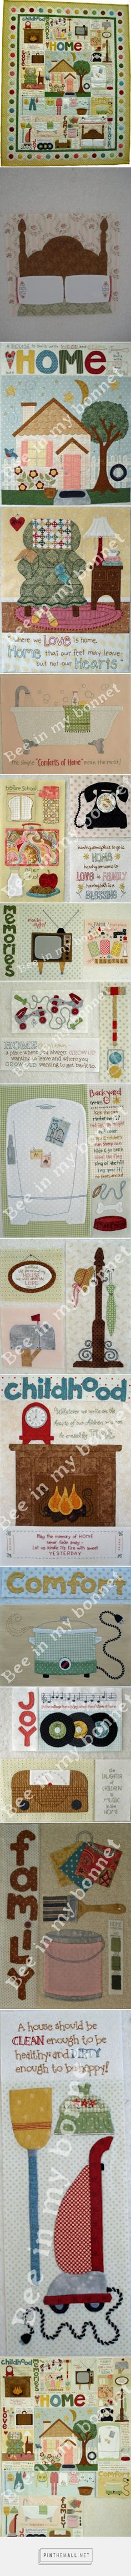 Bee In My Bonnet Co. Patterns: Comforts of Home... - a grouped images picture